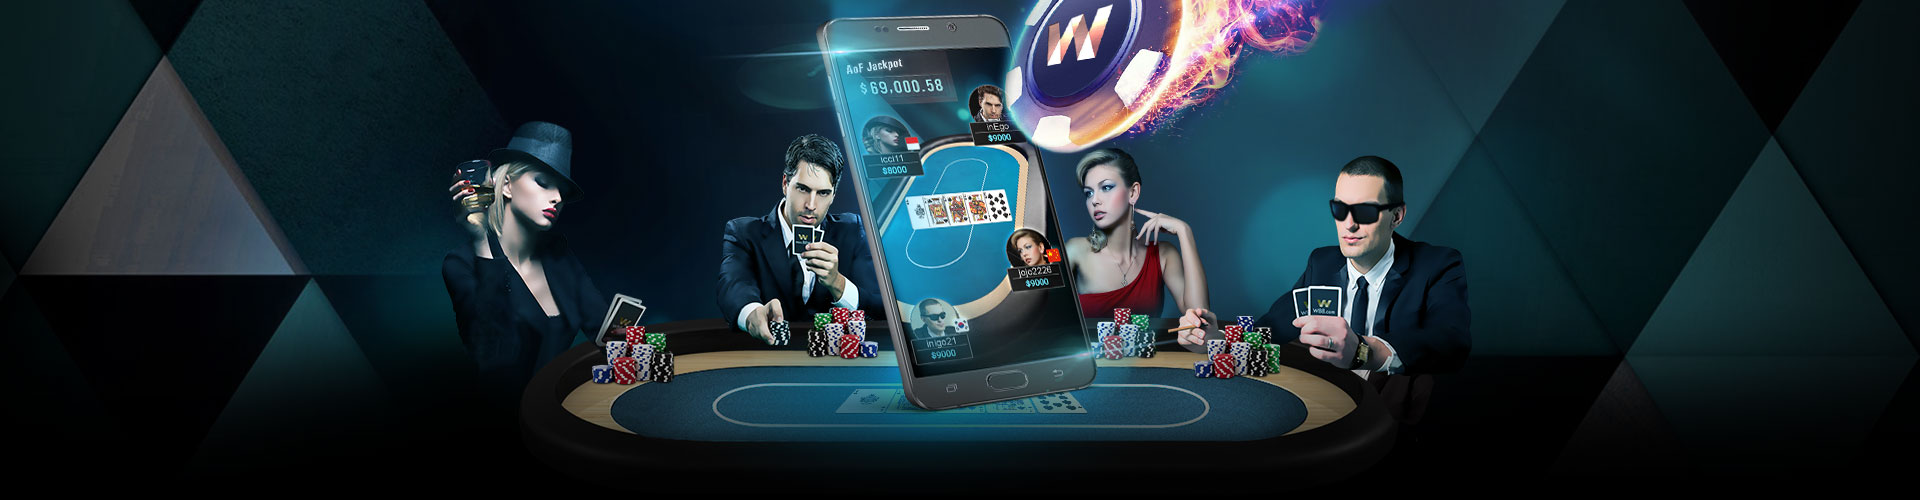 Cara Memainkan Game Poker Paling Detail